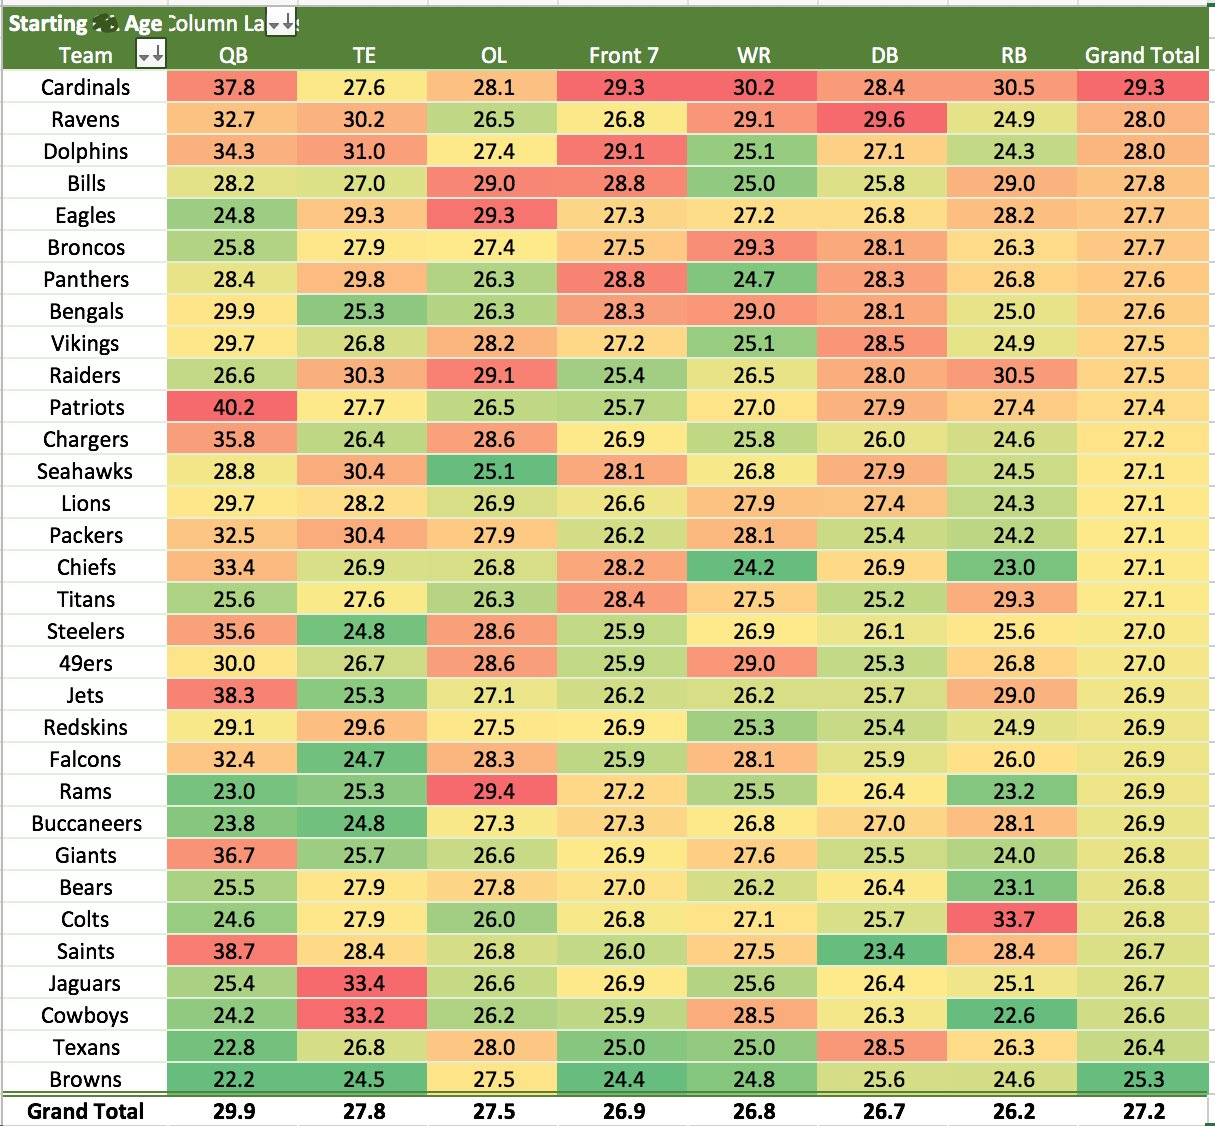 Average starter ages this #NFL season, calculated on each game day. Red=oldest. Green=youngest. https://t.co/PMNdD6yqXW